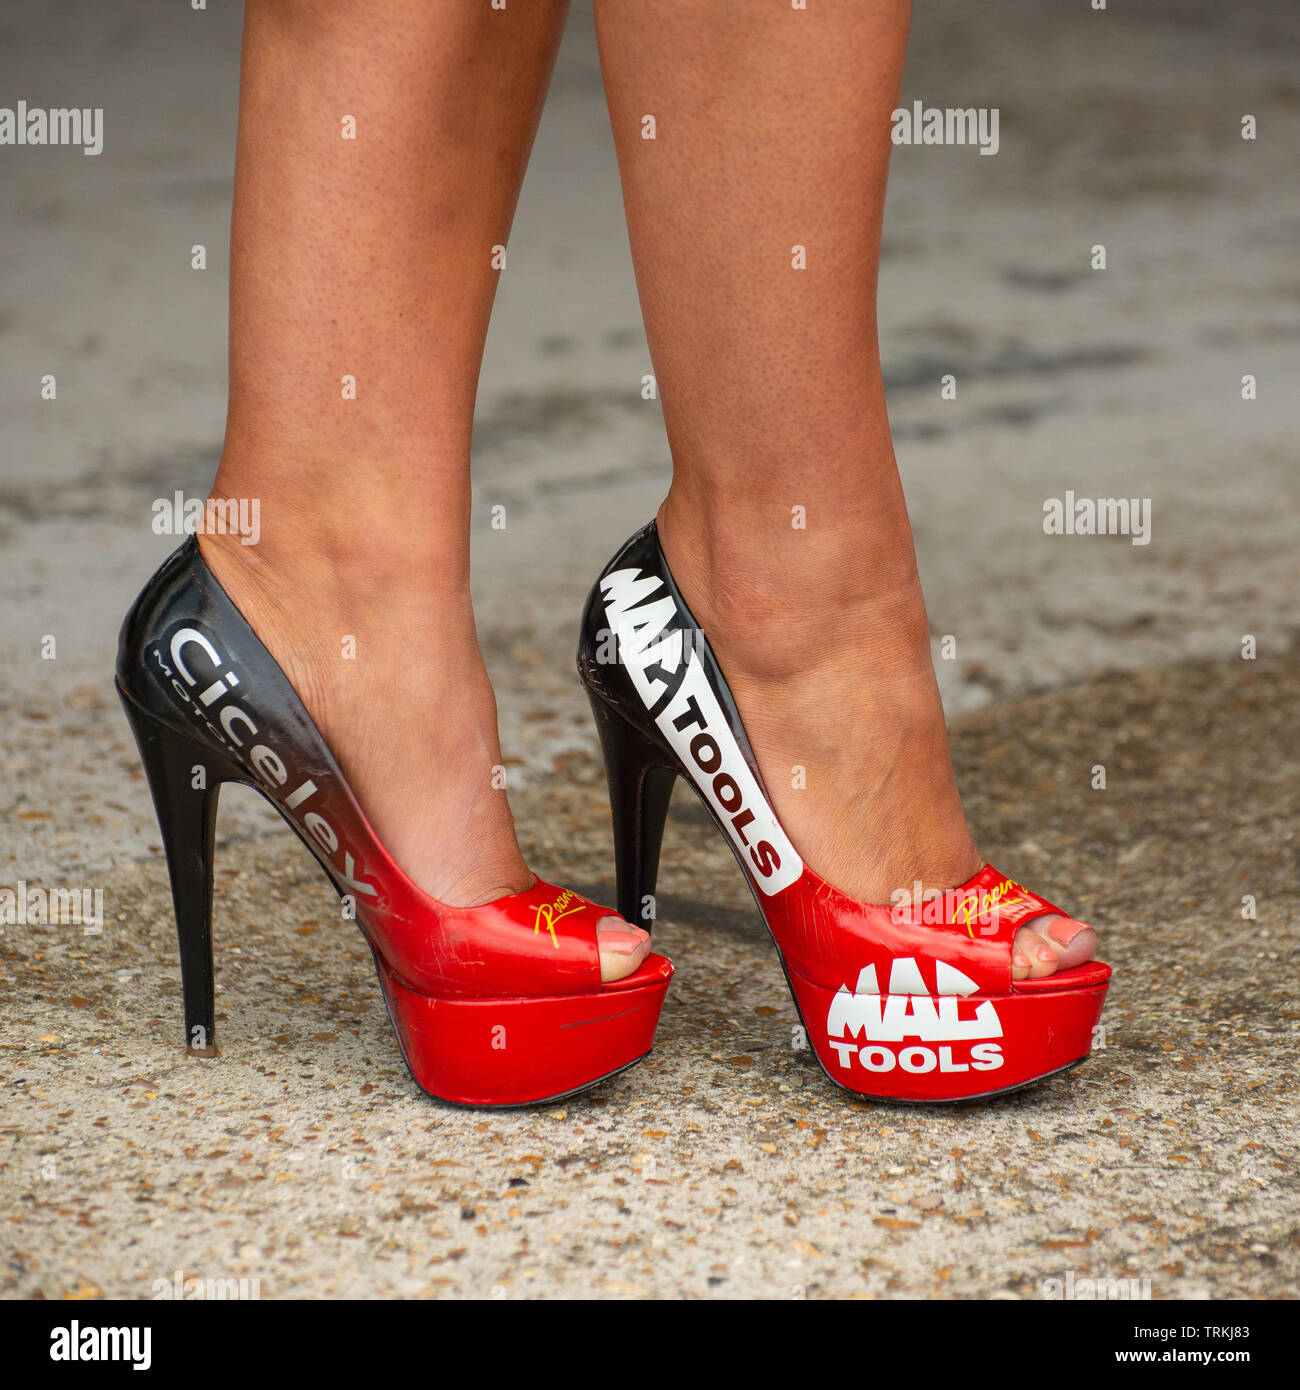 High Heel Stilettos Stockfotos und bilder Kaufen Alamy